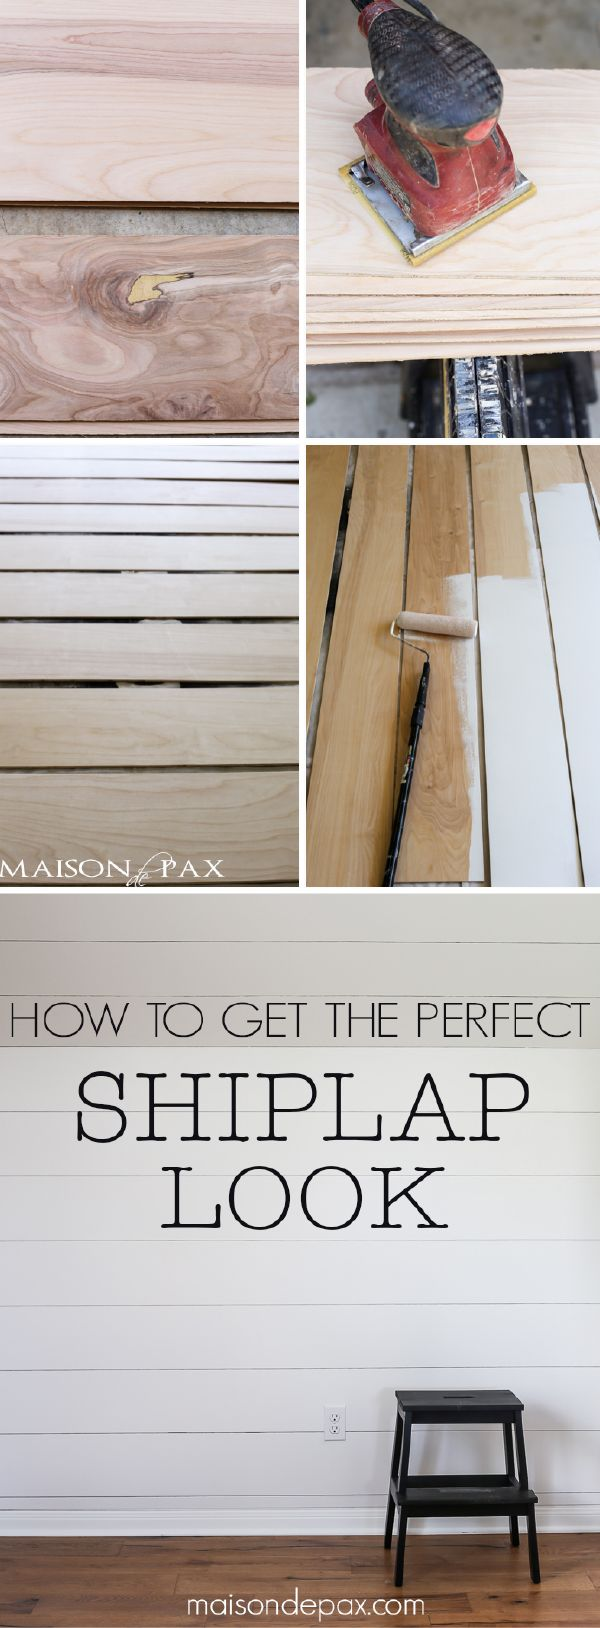 Looking for a perfect weekend project? Try this easy DIY tutorial on how to get the perfect shiplap look. It's a simple and creative way from Rachel of @maisondepax to keep your bedroom, kitchen, or bathroom up-to-date—while adding a rustic and textured feel to your space.